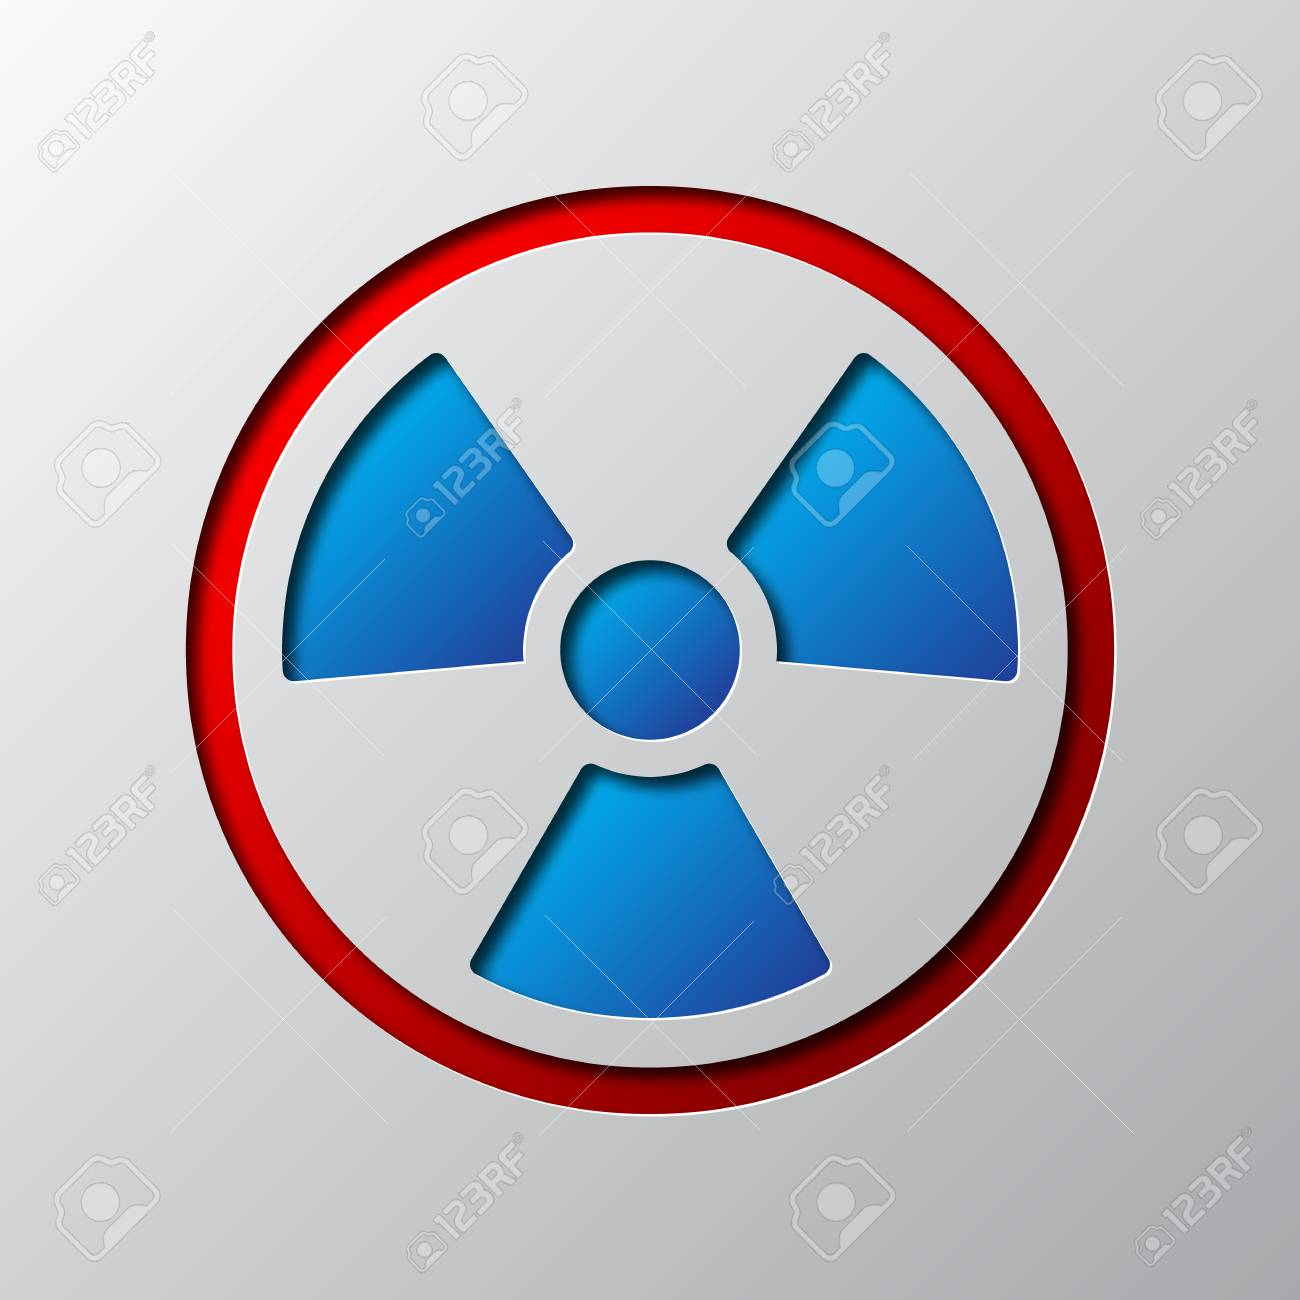 Paper Art Of Radiation Symbol Isolated Vector Illustration